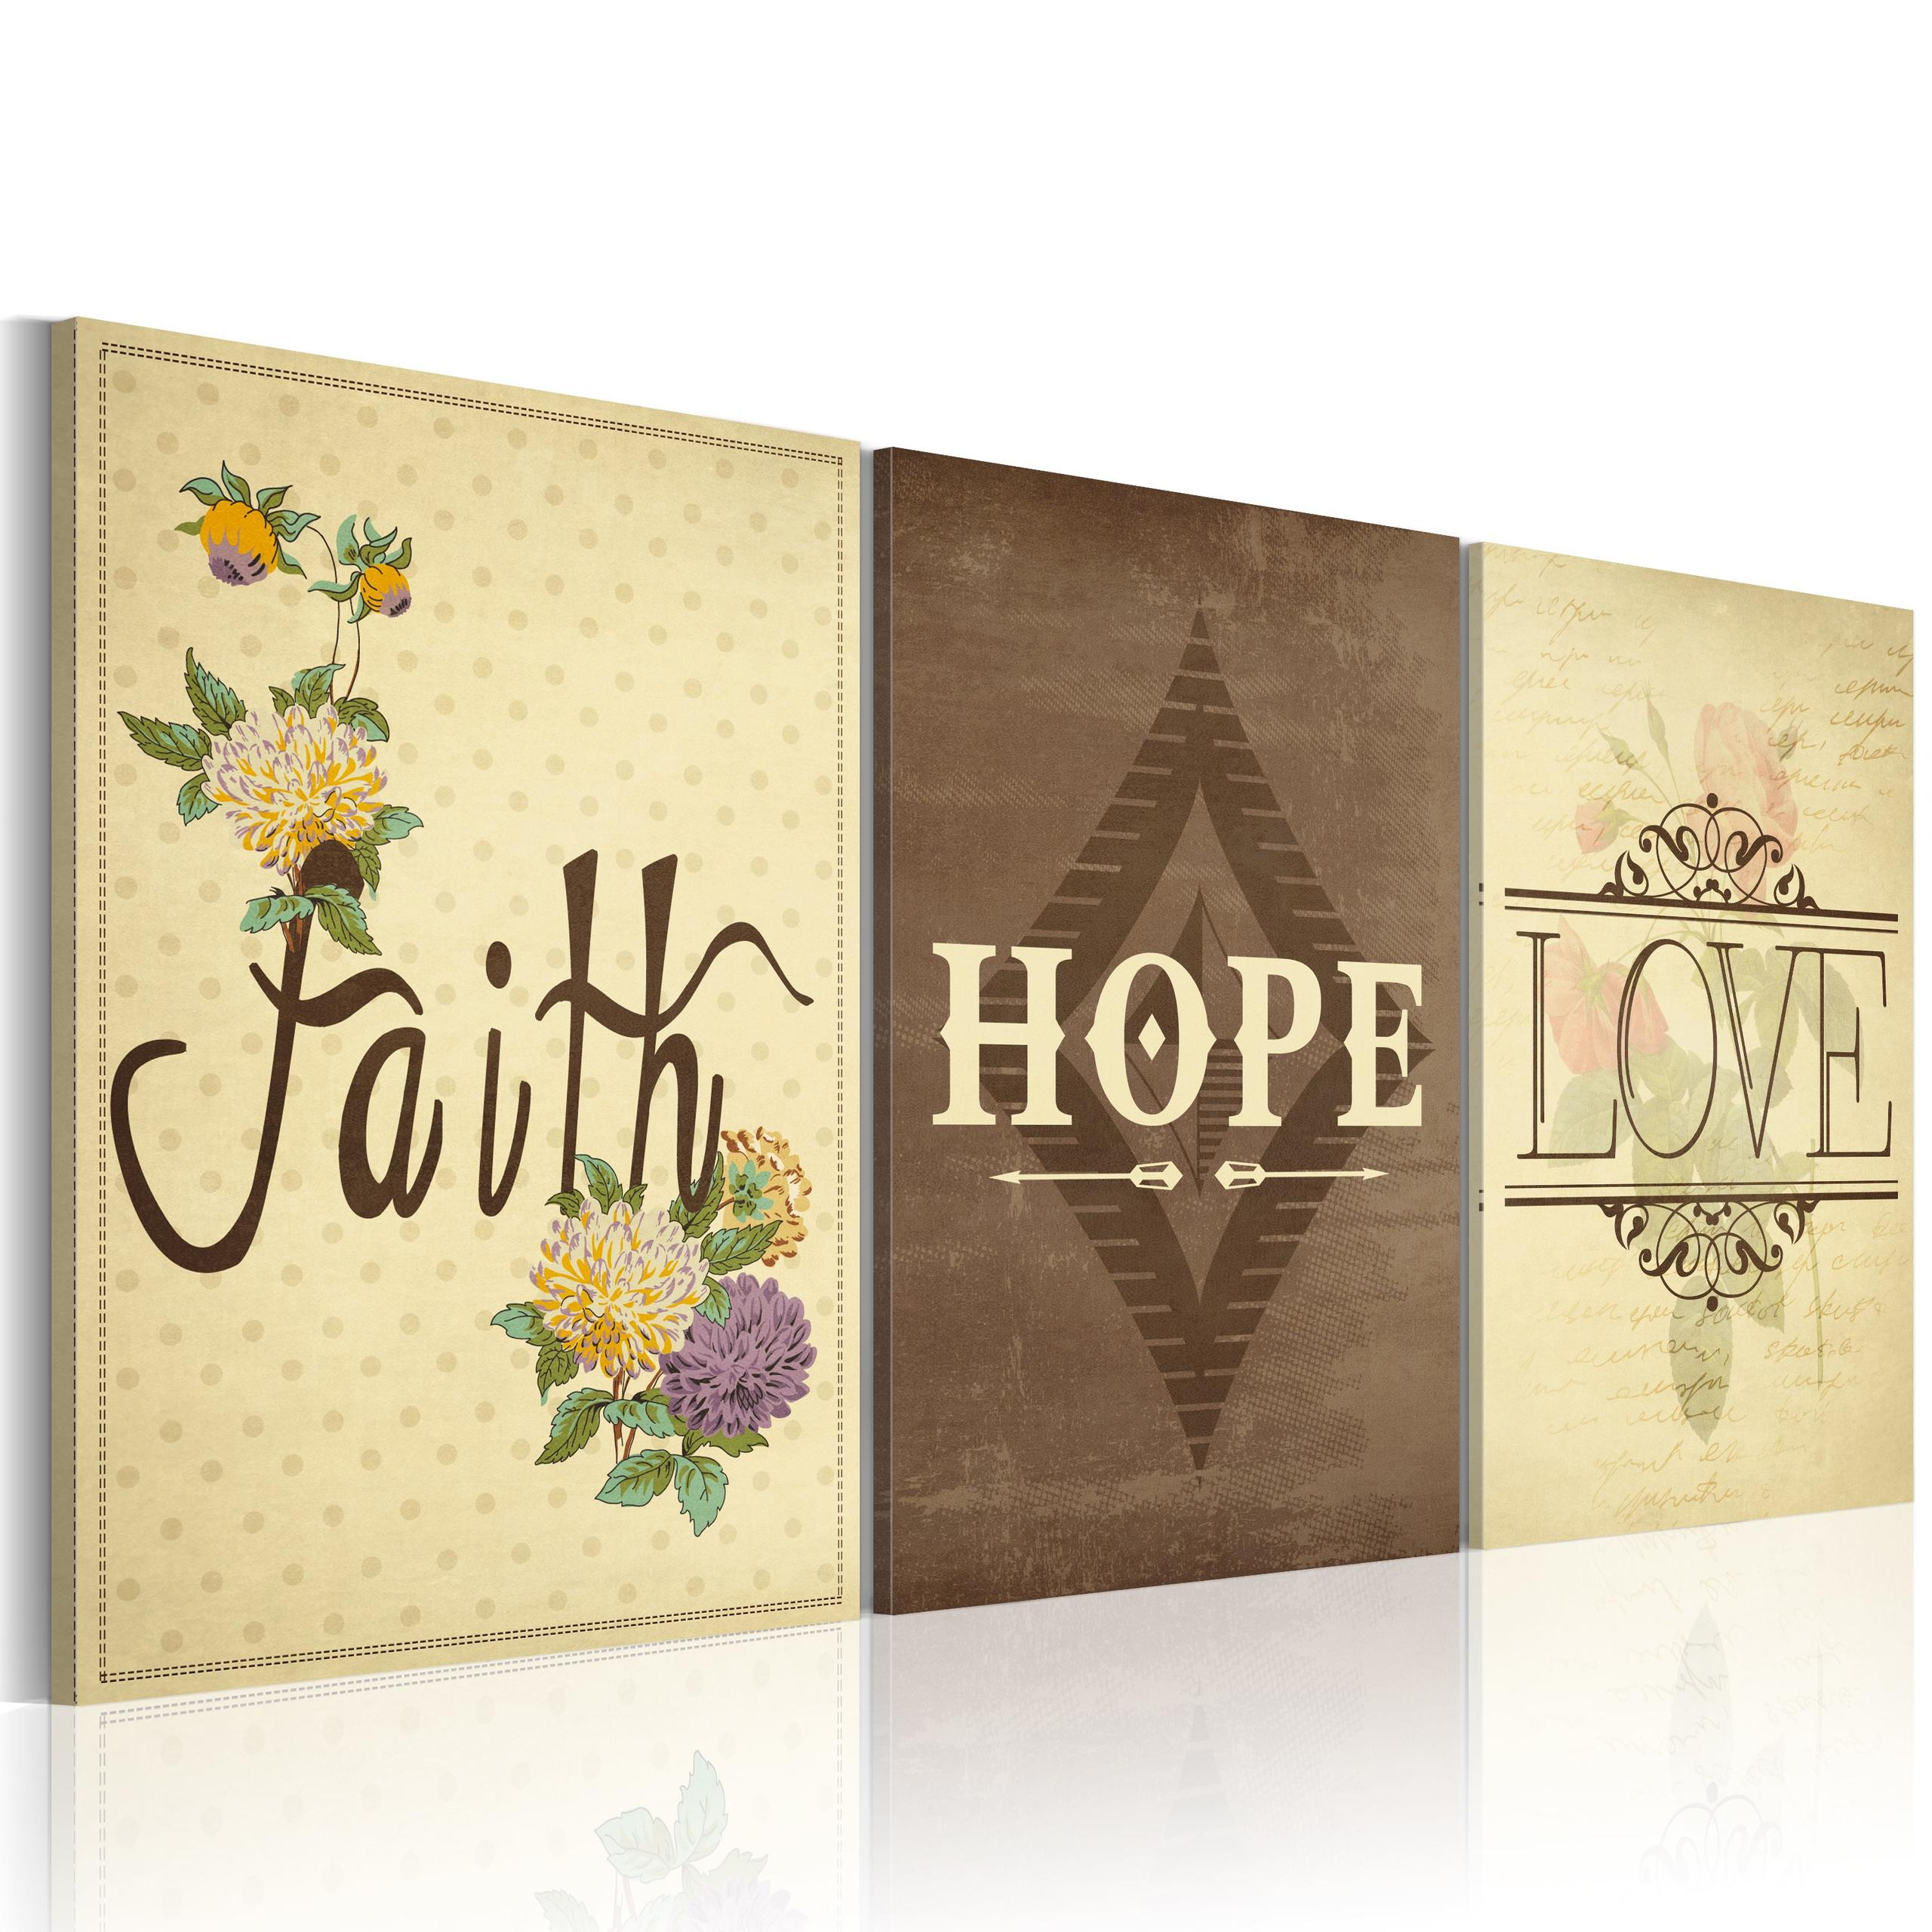 Quadro - Faith, Hope & Love Erroi